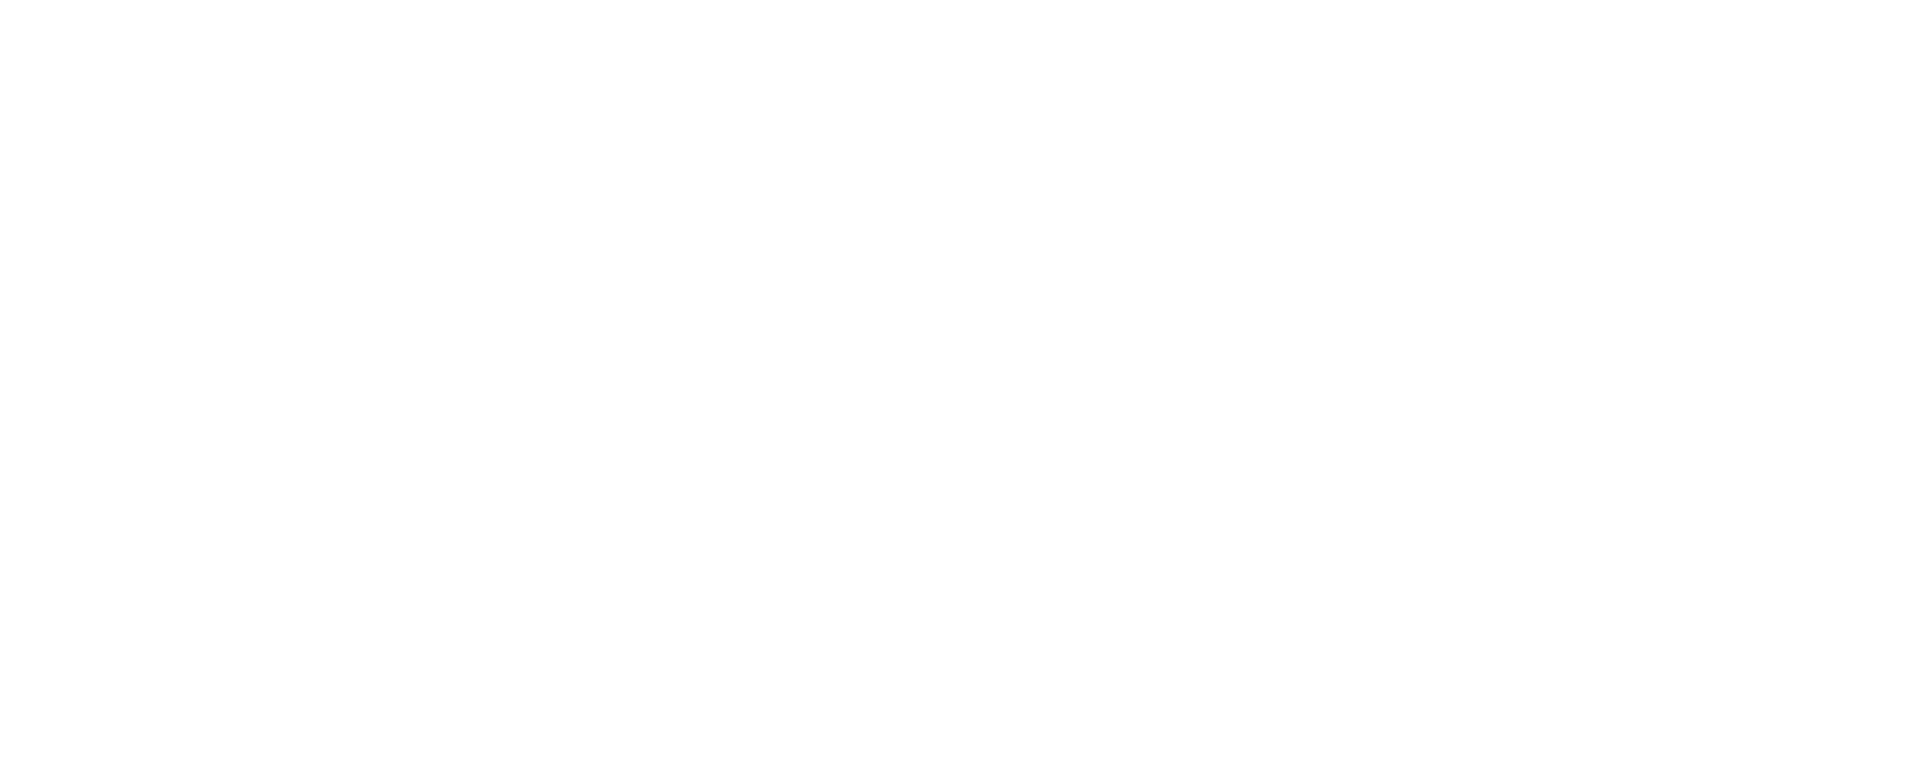 pasrpack